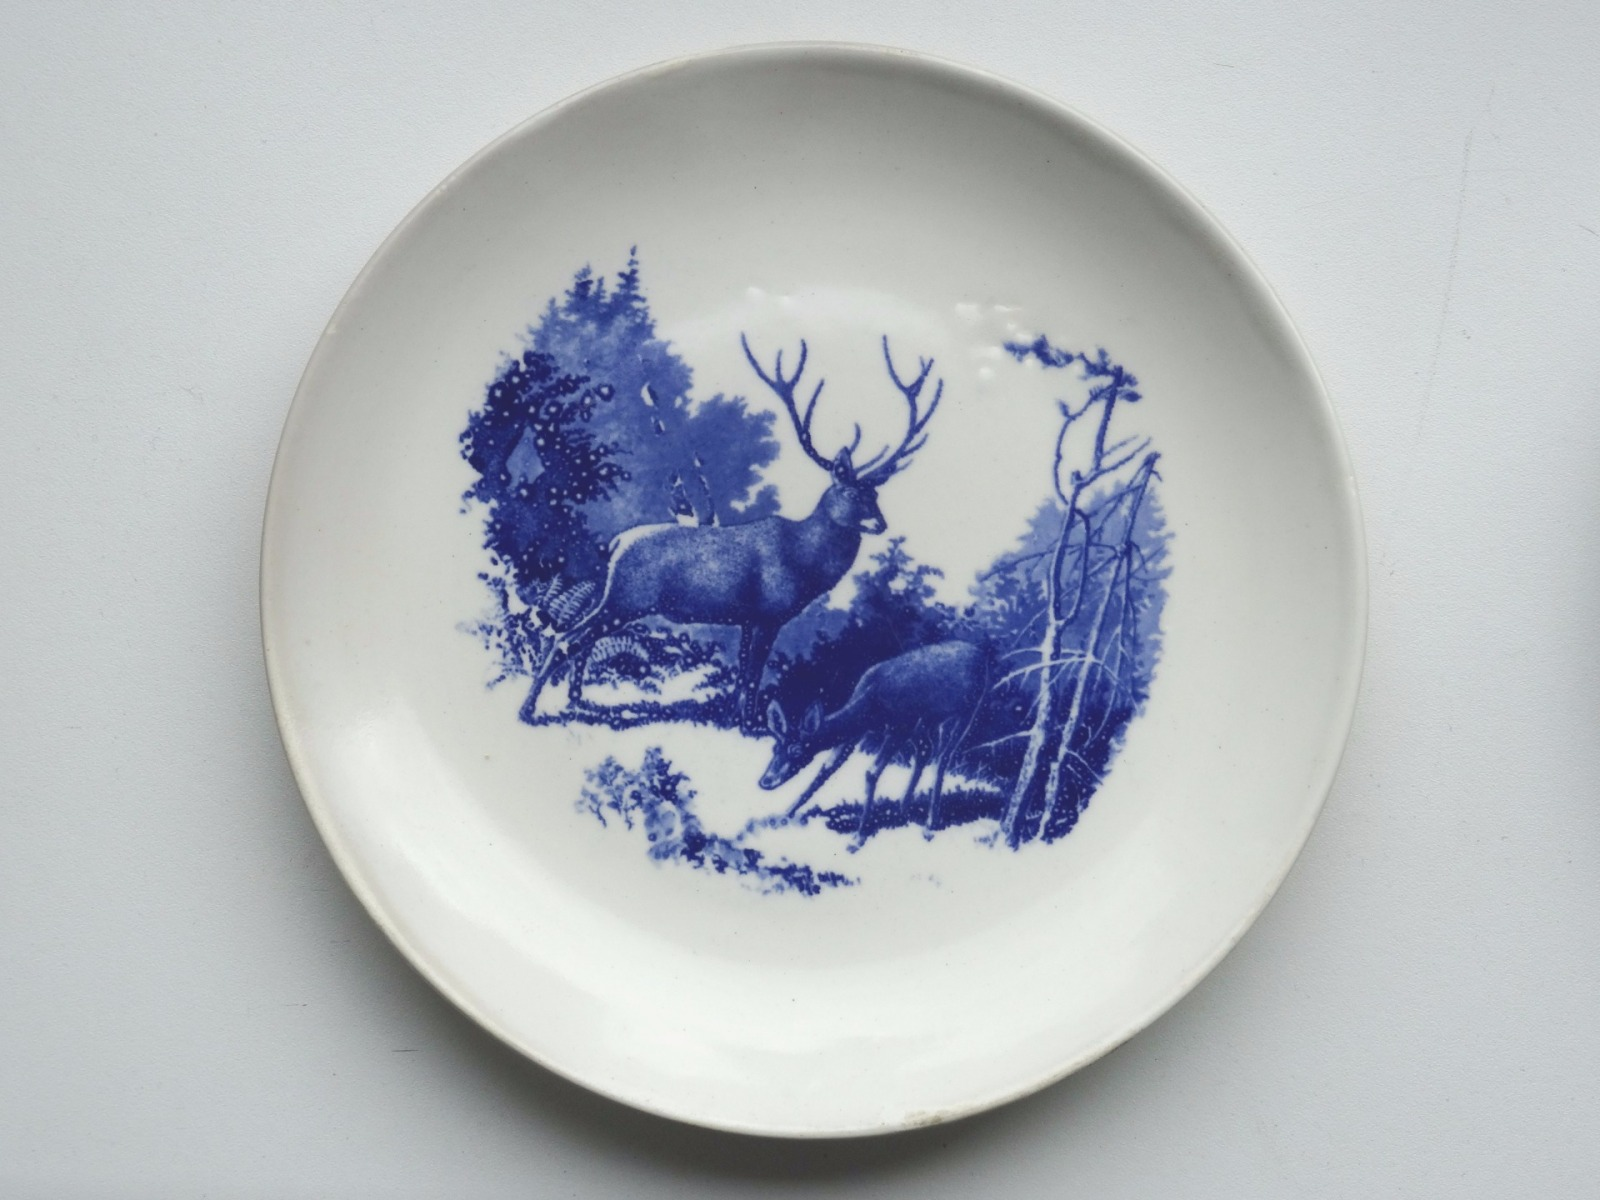 Item #568 - RPF - Plate with deer - Auction 53 - Classic art